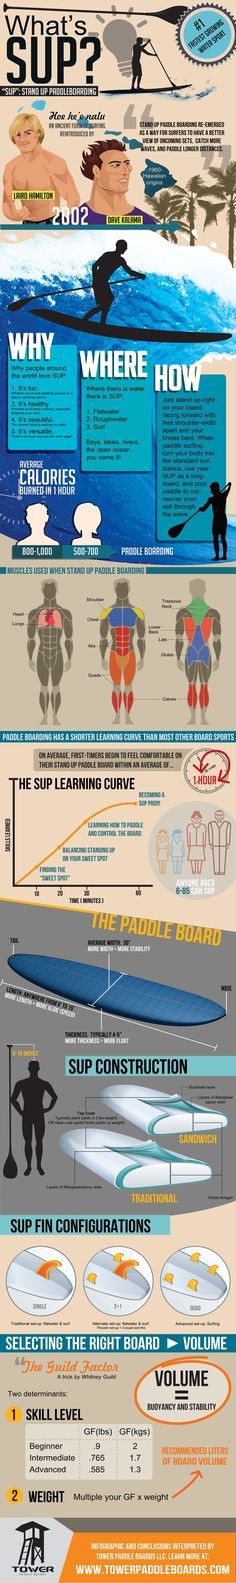 Stand Up Paddle Board Infographic for SUP https://www.uksportsoutdoors.com/product/inflatable-stand-up-paddle-board/